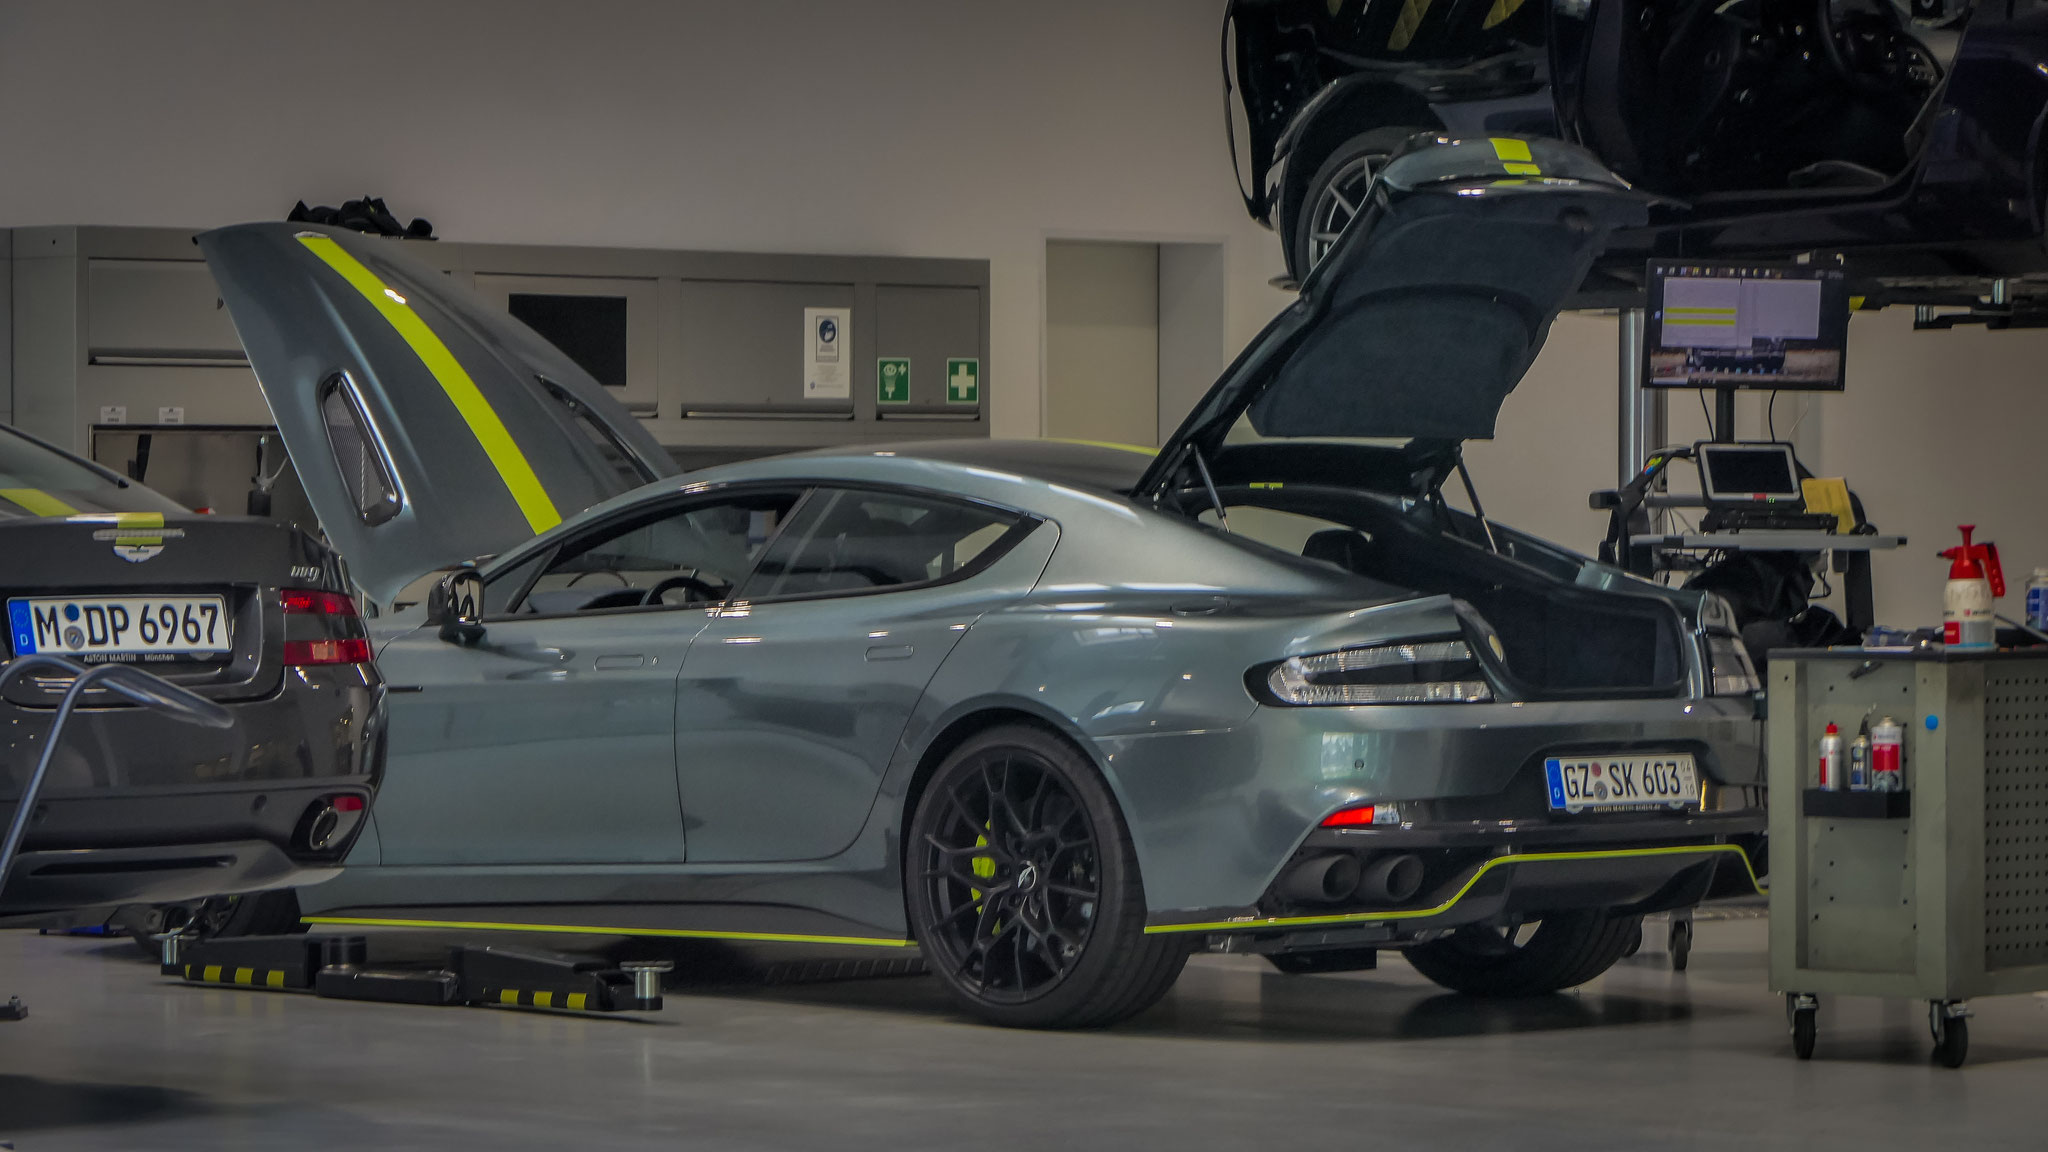 Aston Martin Rapide AMR - GZ-SK-603